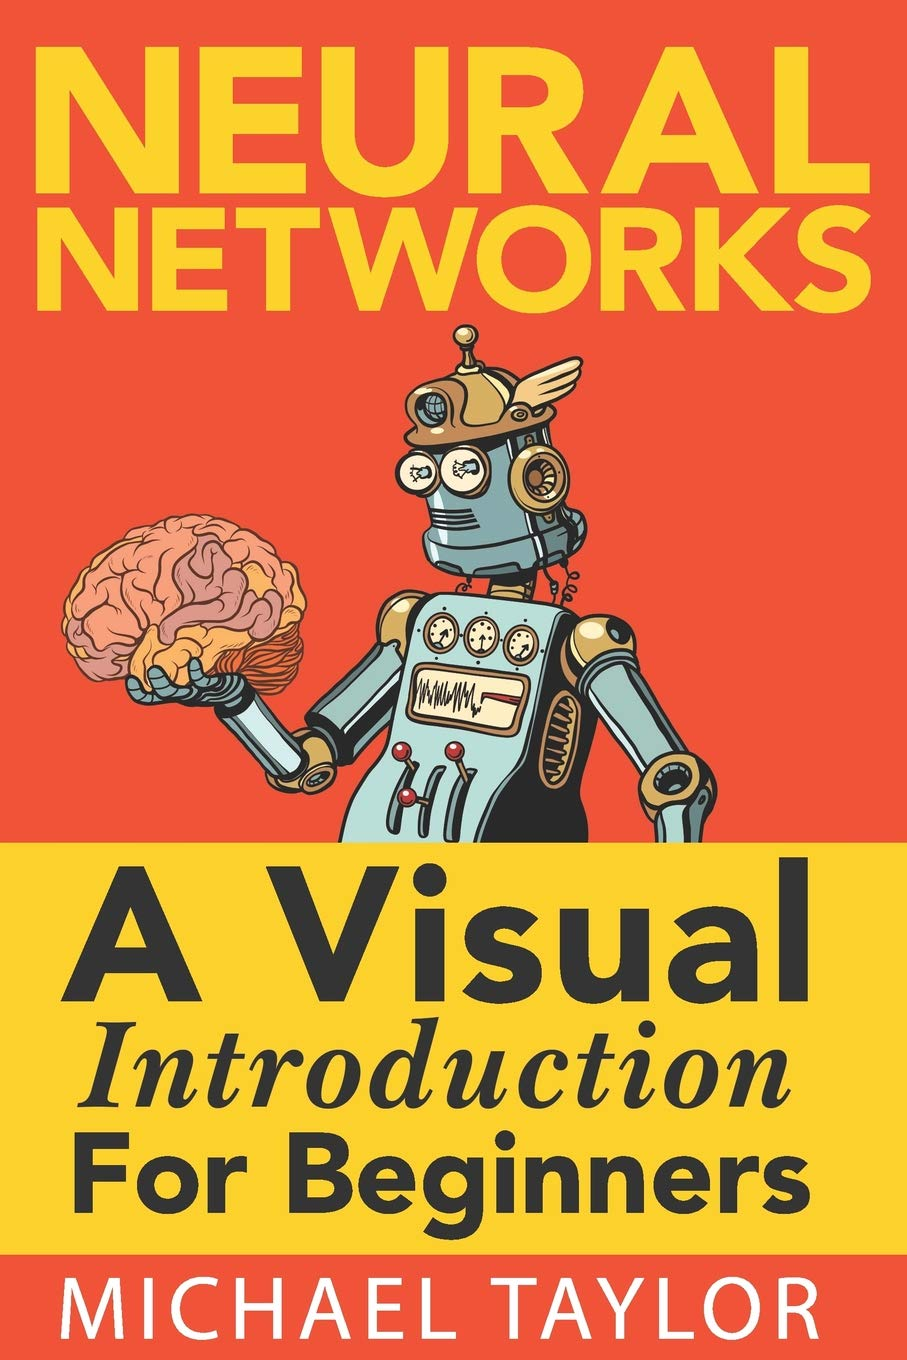 Make Your Own Neural Network: An In-depth Visual Introduction For Beginners ebook